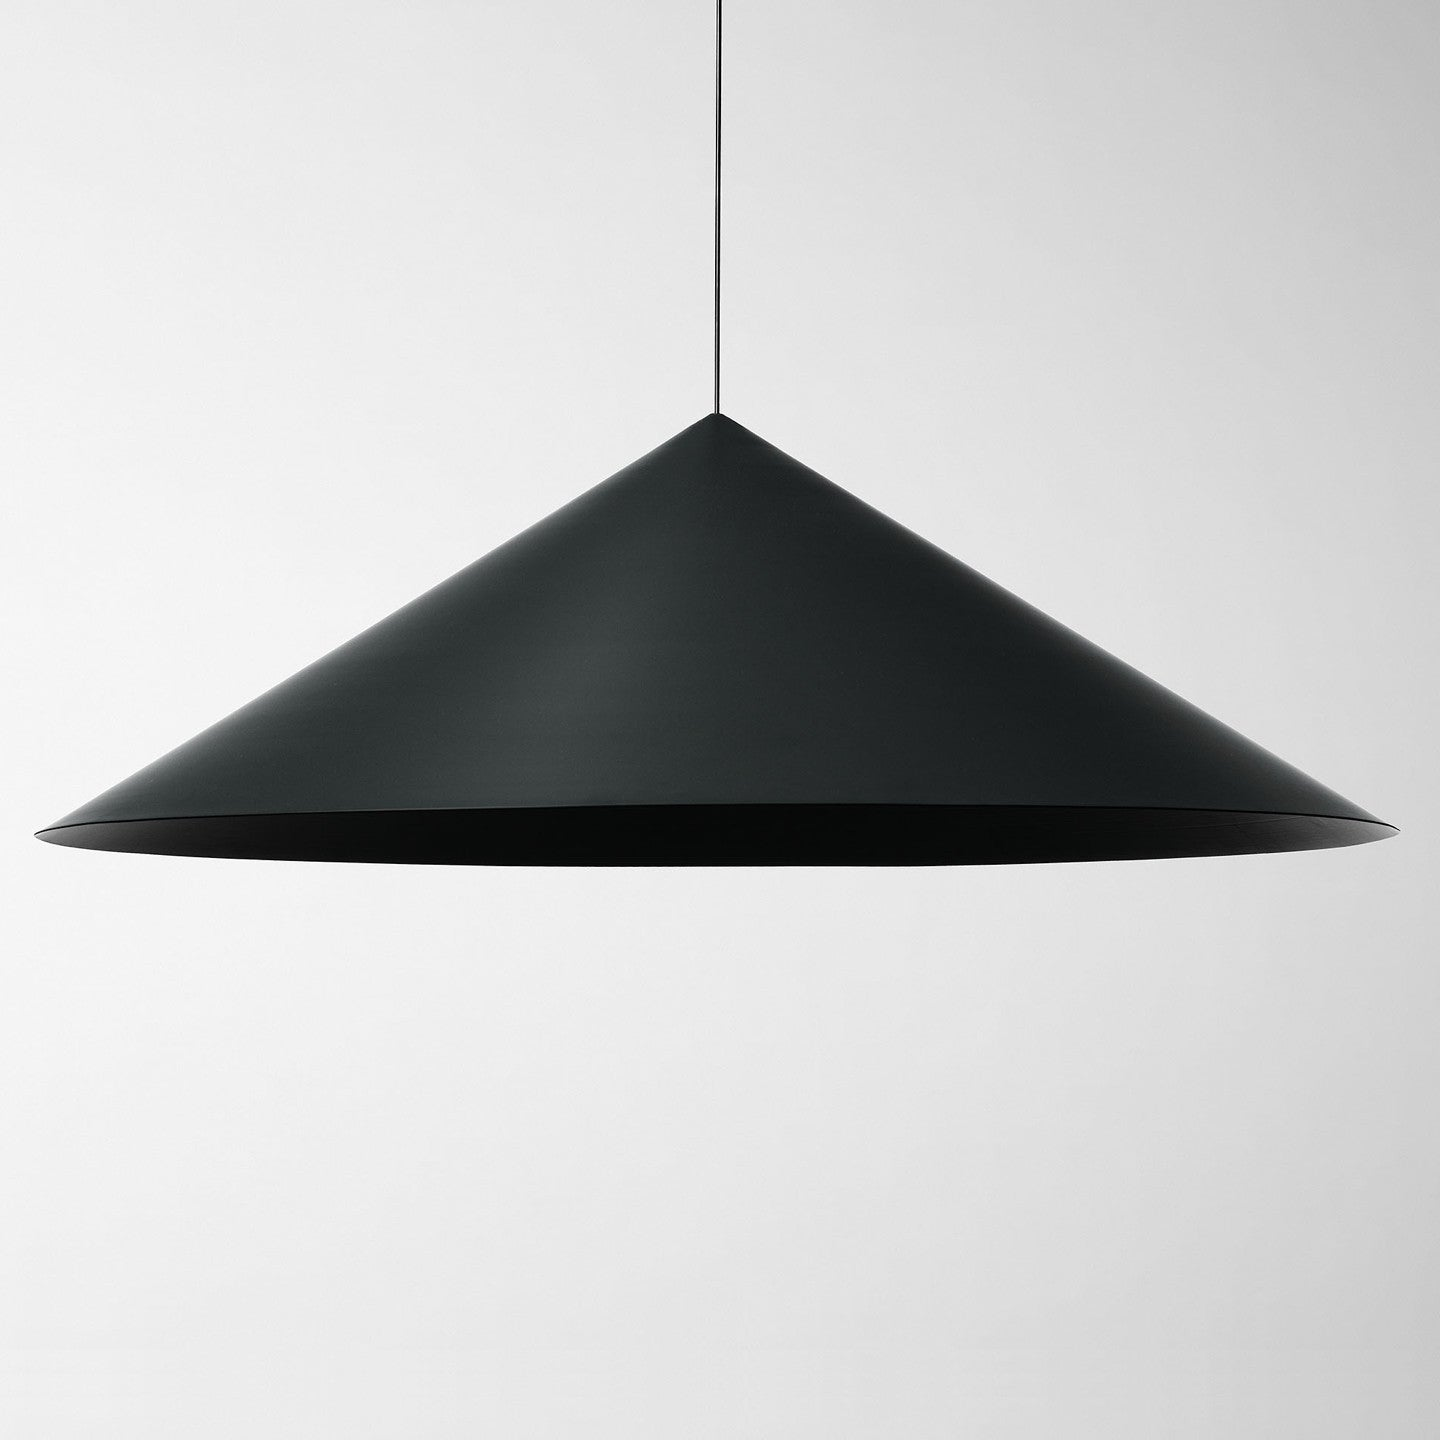 smarty large light original extra by smart lamp product shade deco lamps pendant elektra jacquelinehammondsmartdeco